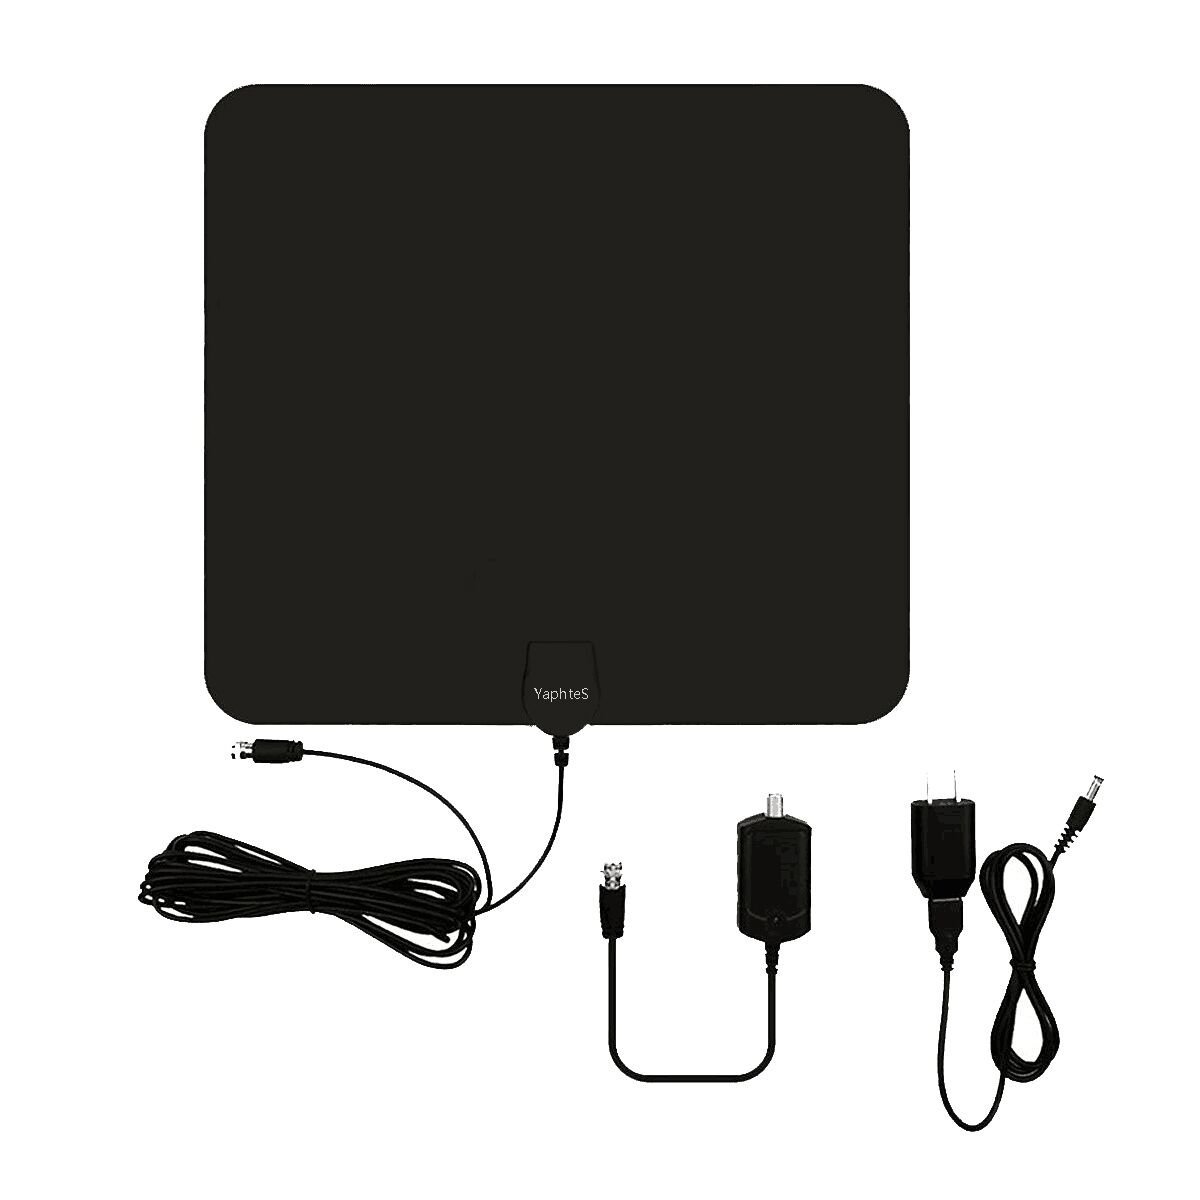 TV antenna,YaphteS Amplified Indoor Digital HDTV Antenna 50 Mile Range with Power Supply and 13 ft Coax Cable